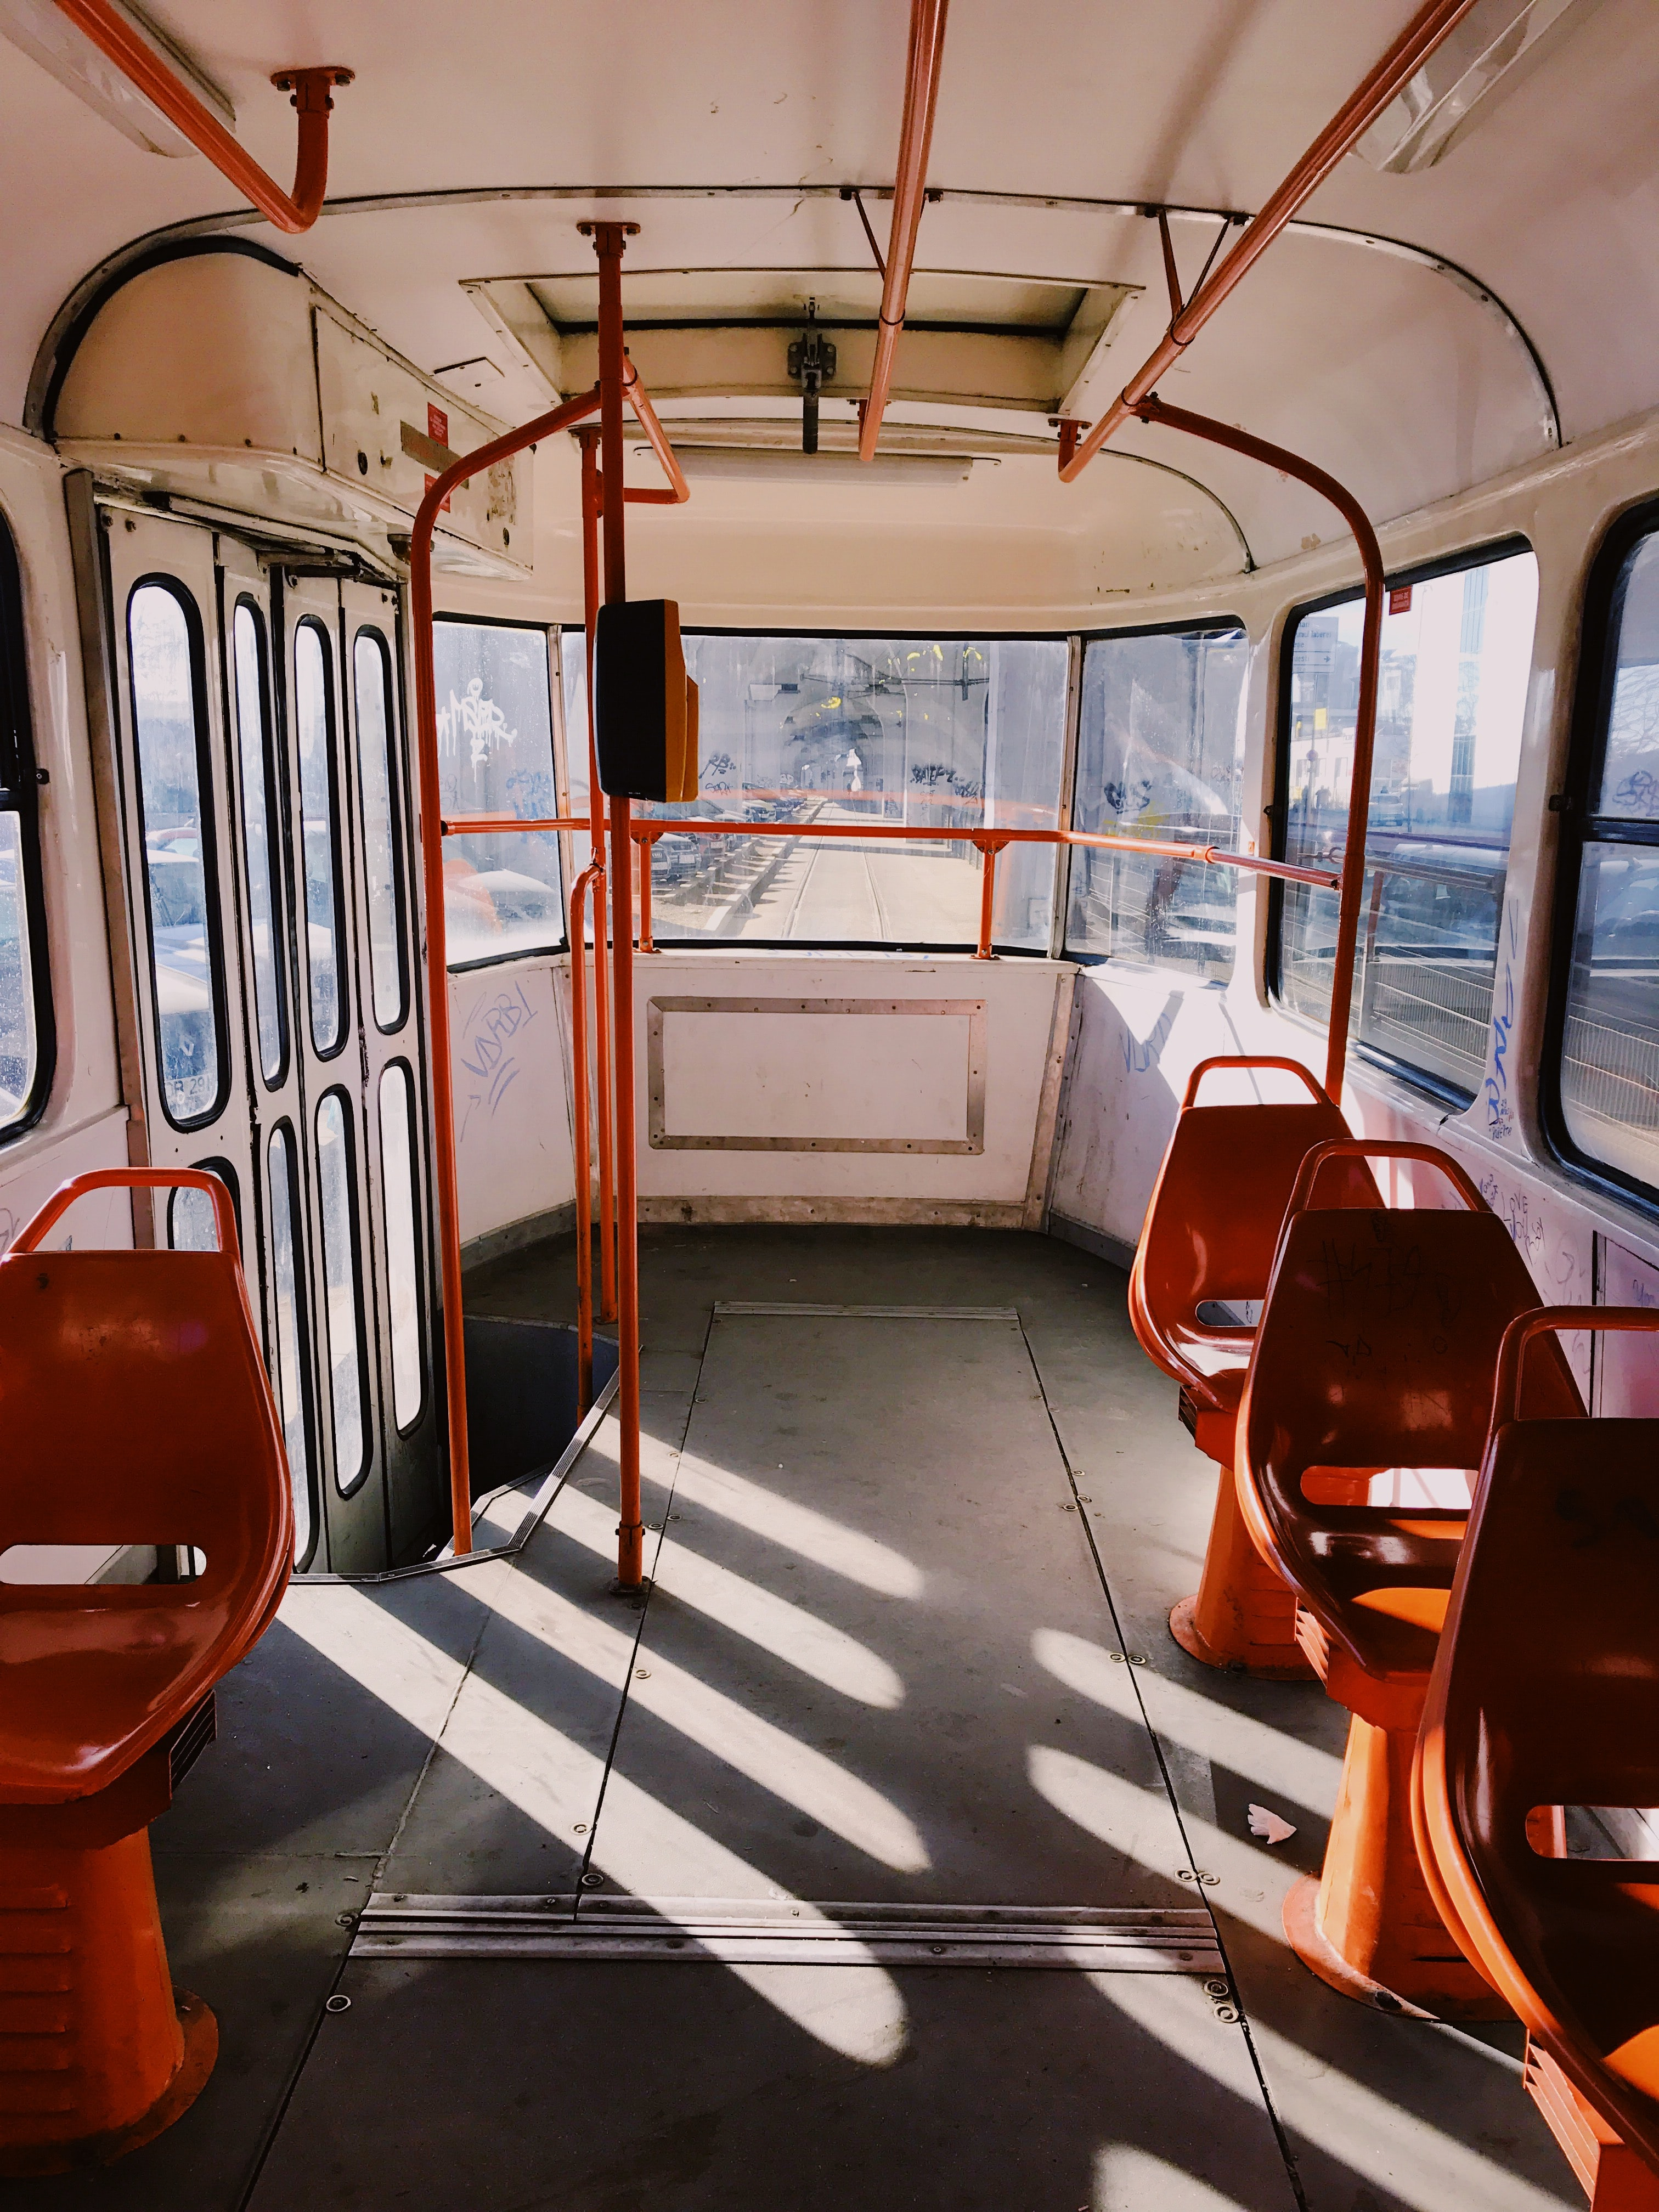 red train chairs